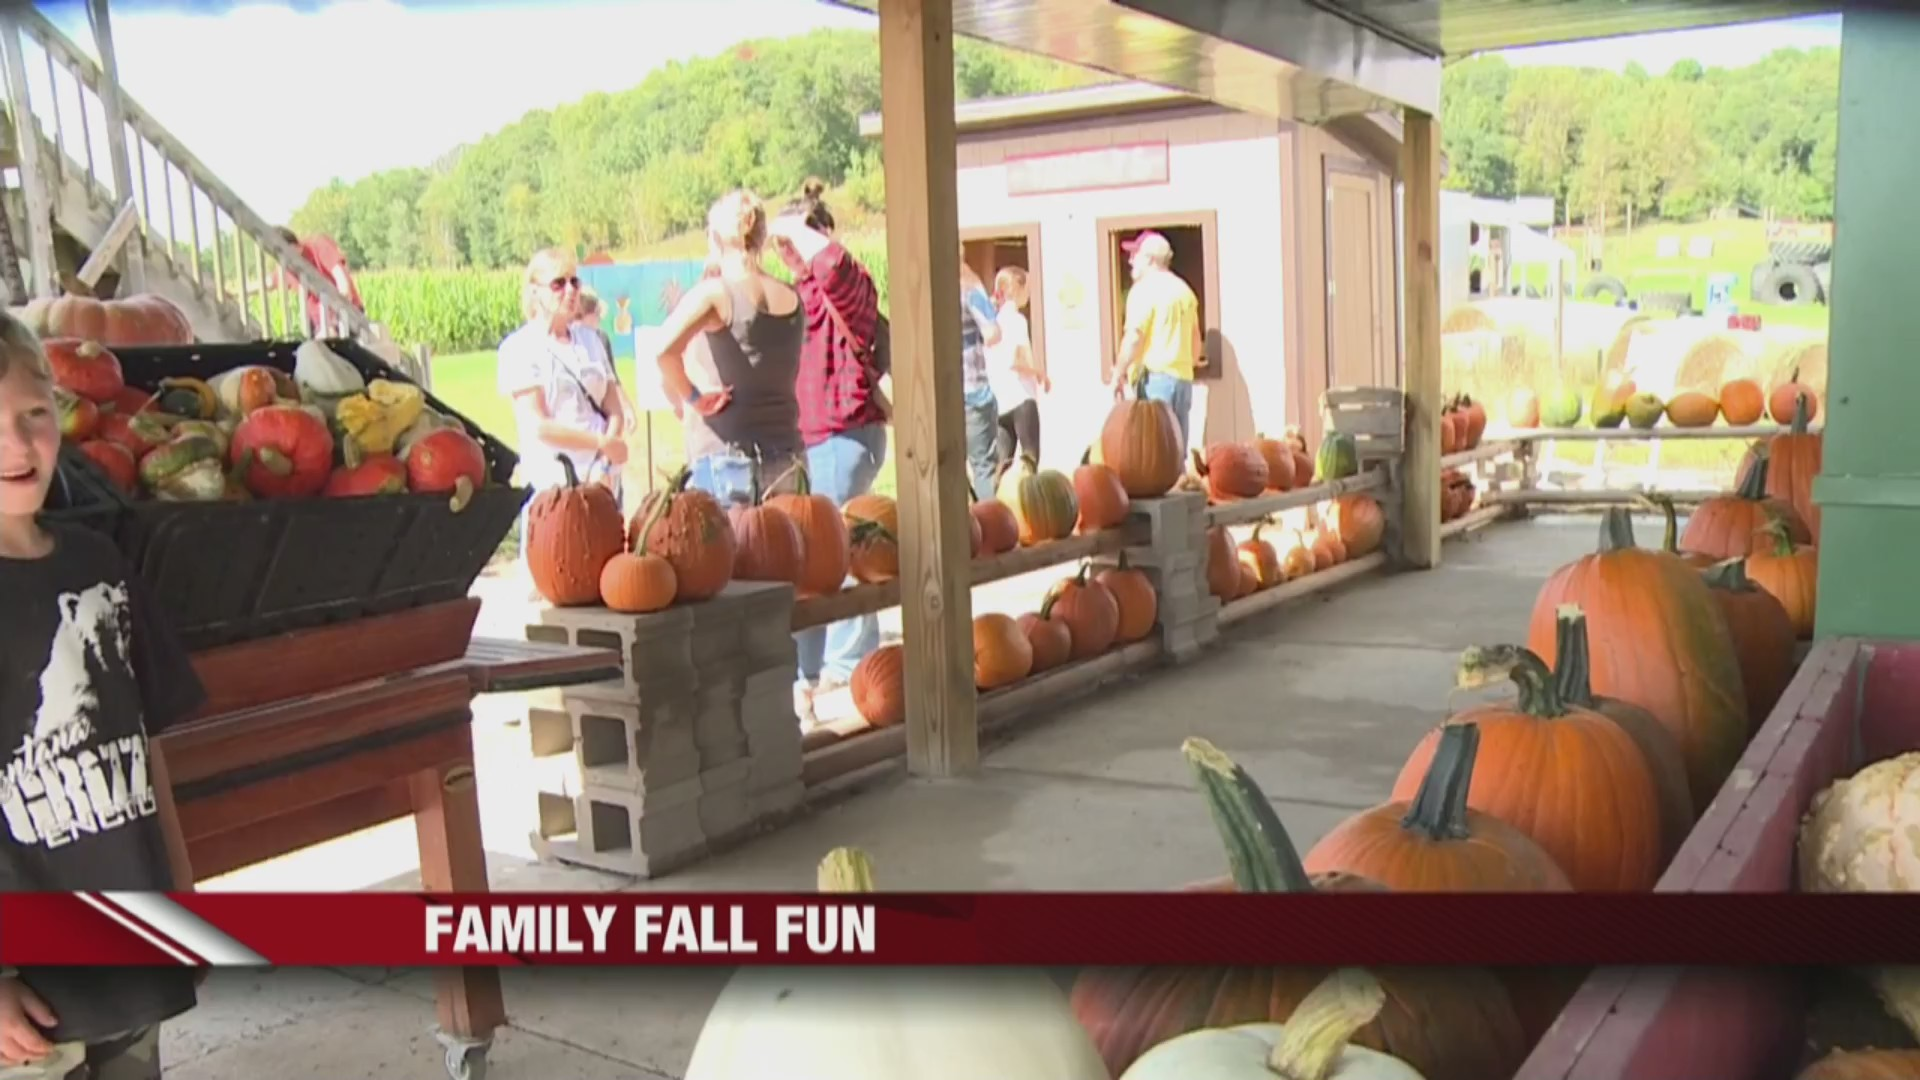 Valley Pasture Farm featuring fun fall activities